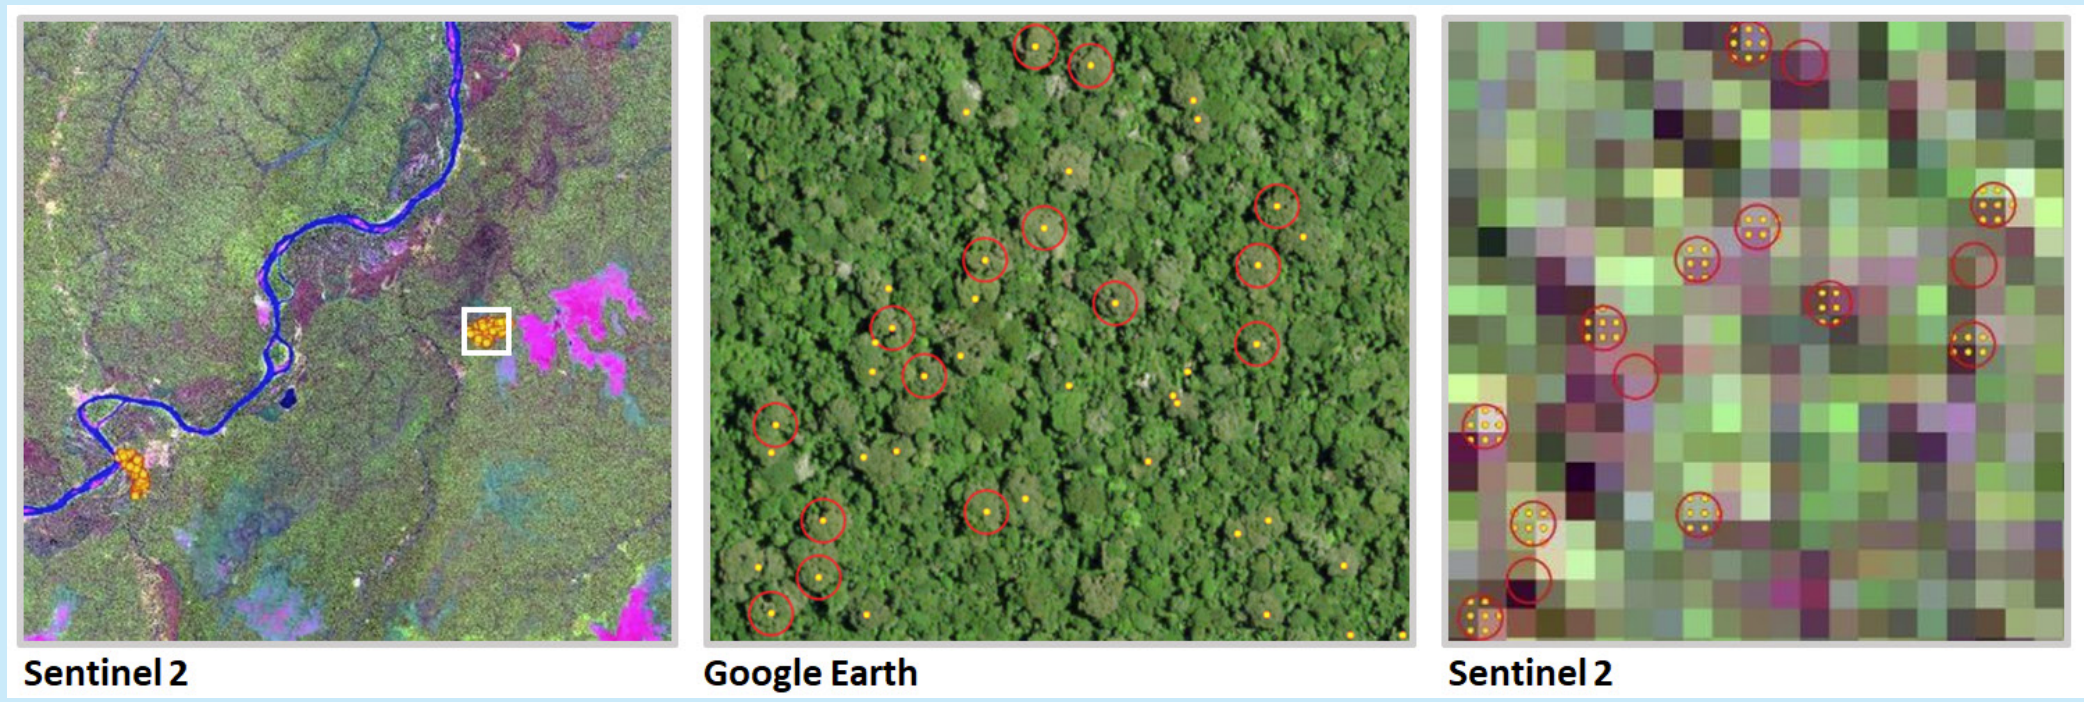 Images taken from satellite are the first step in our model to identify Brazil nuts without humans having to do the tradition manual census on foot